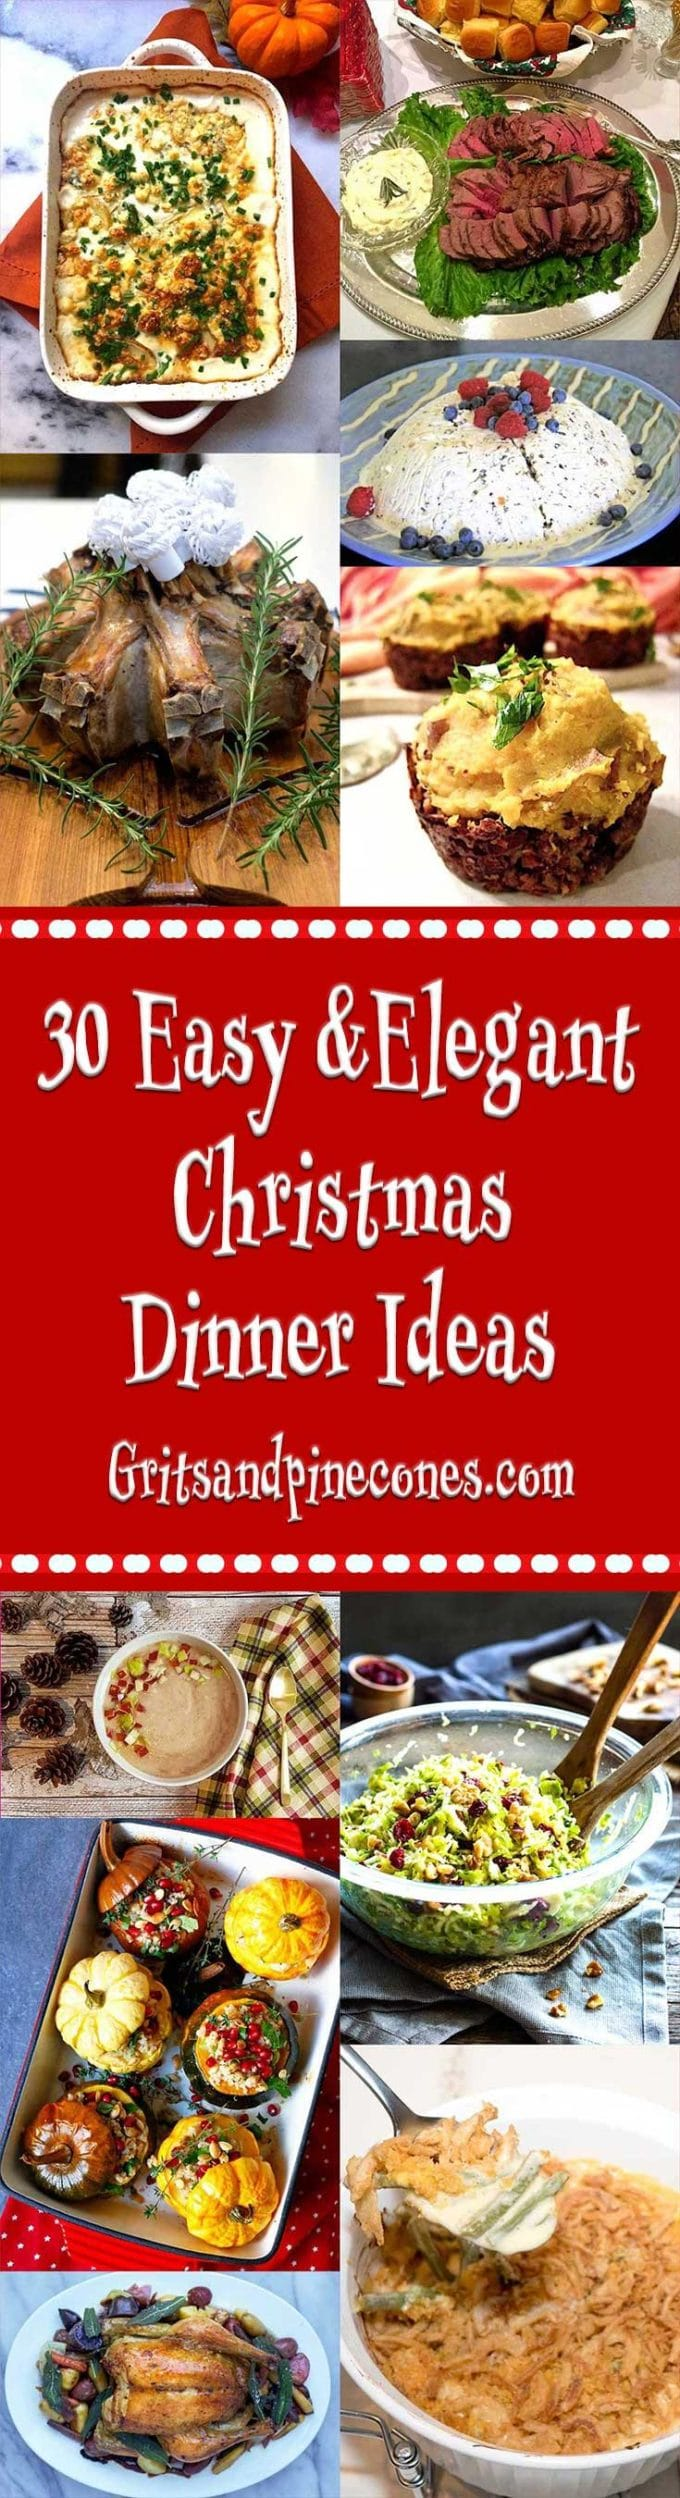 From appetizers to desserts and everything in between, these 30 Easy and Elegant Christmas Dinner Ideas are as special as the holidays!